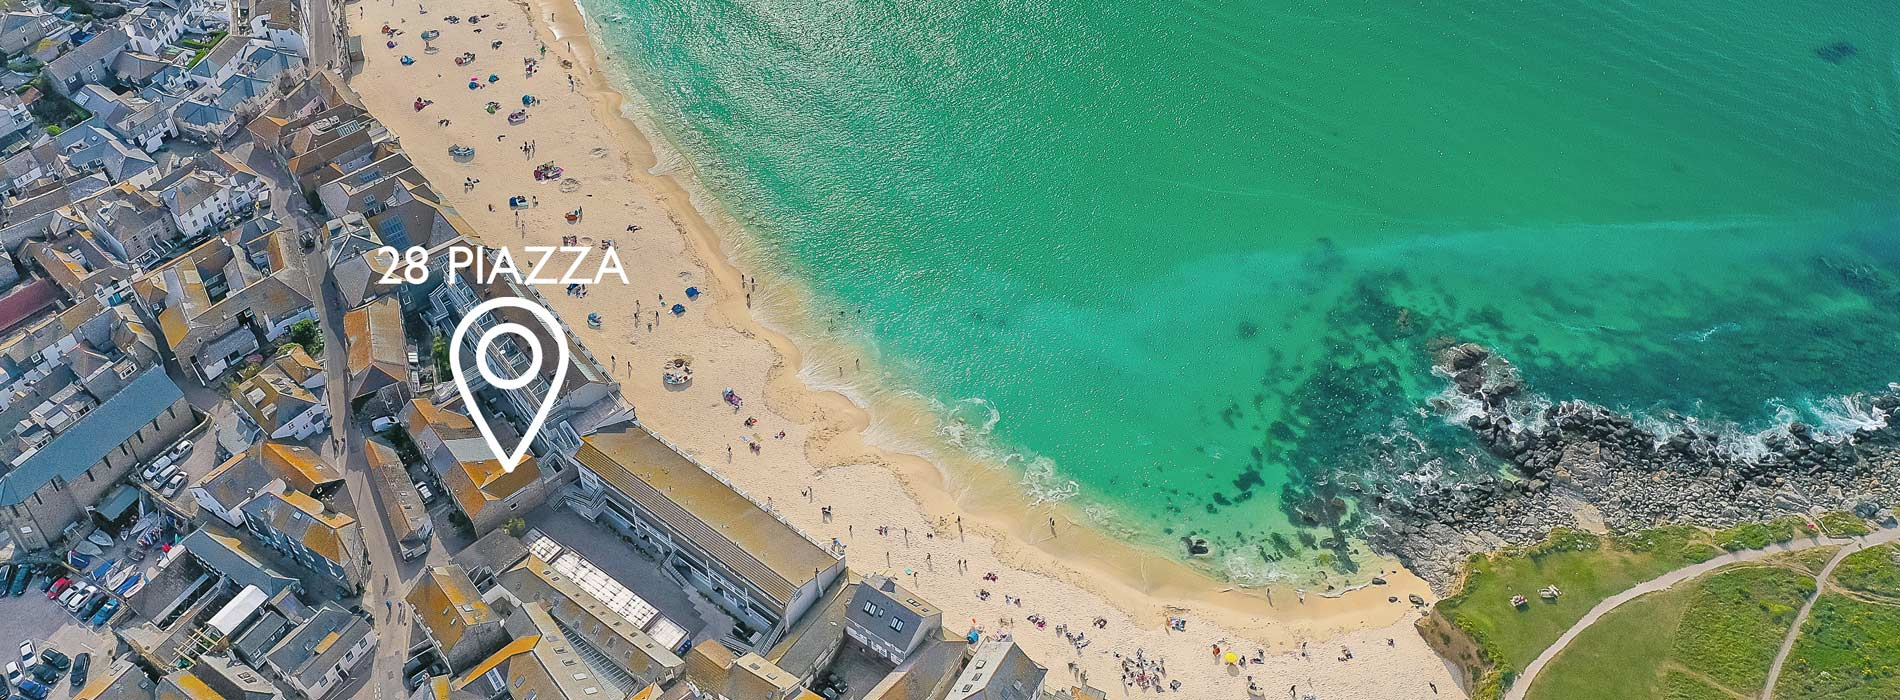 28-piazza-st-ives-location-v2